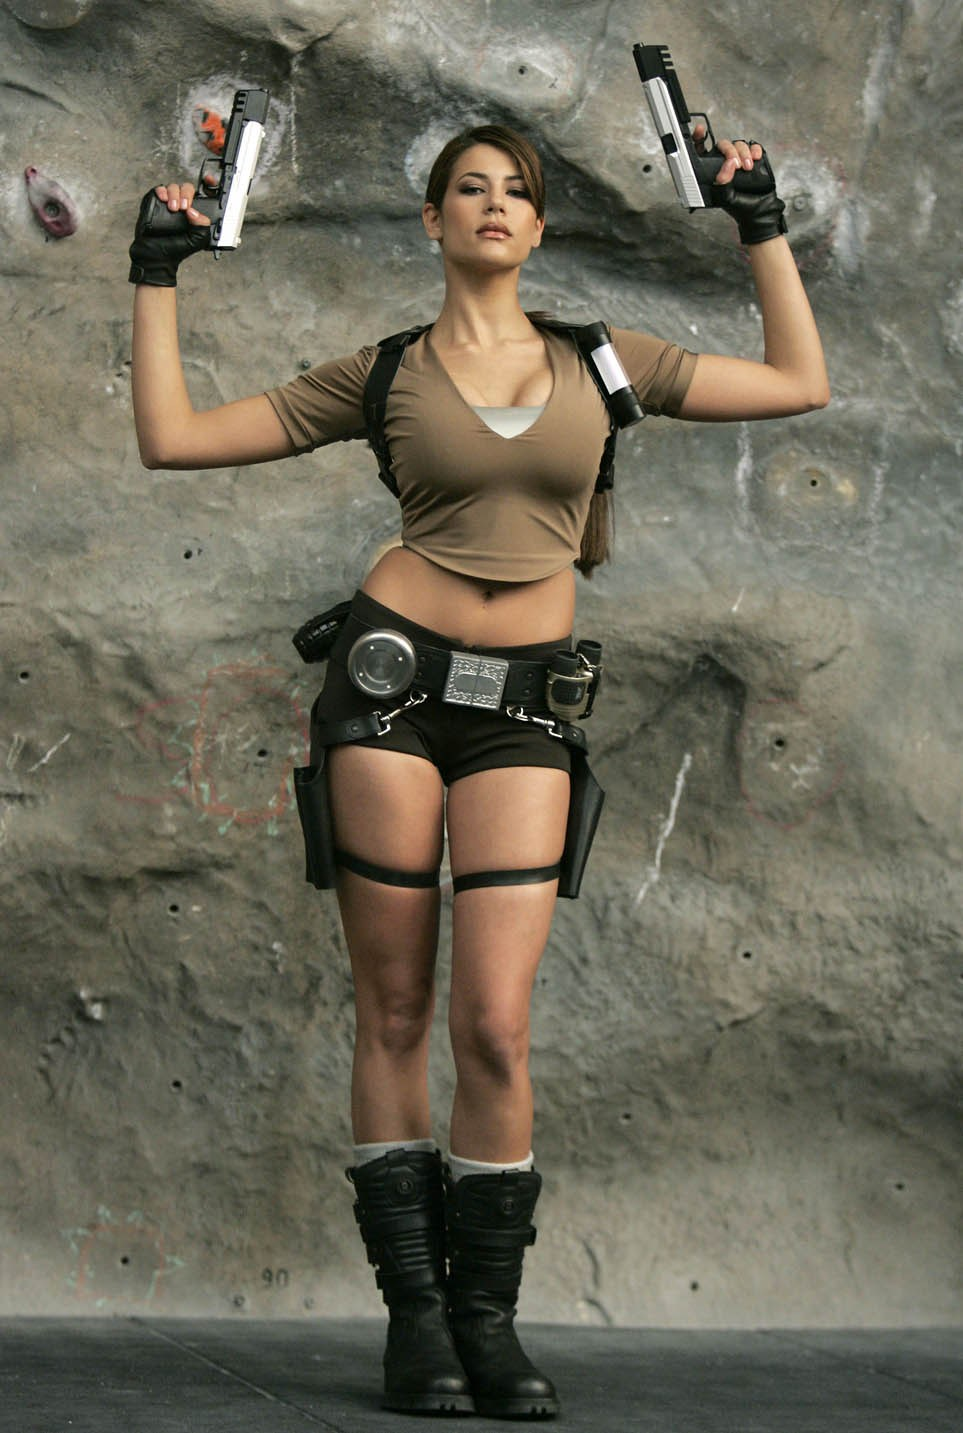 [lara_croft_games_007.jpg]